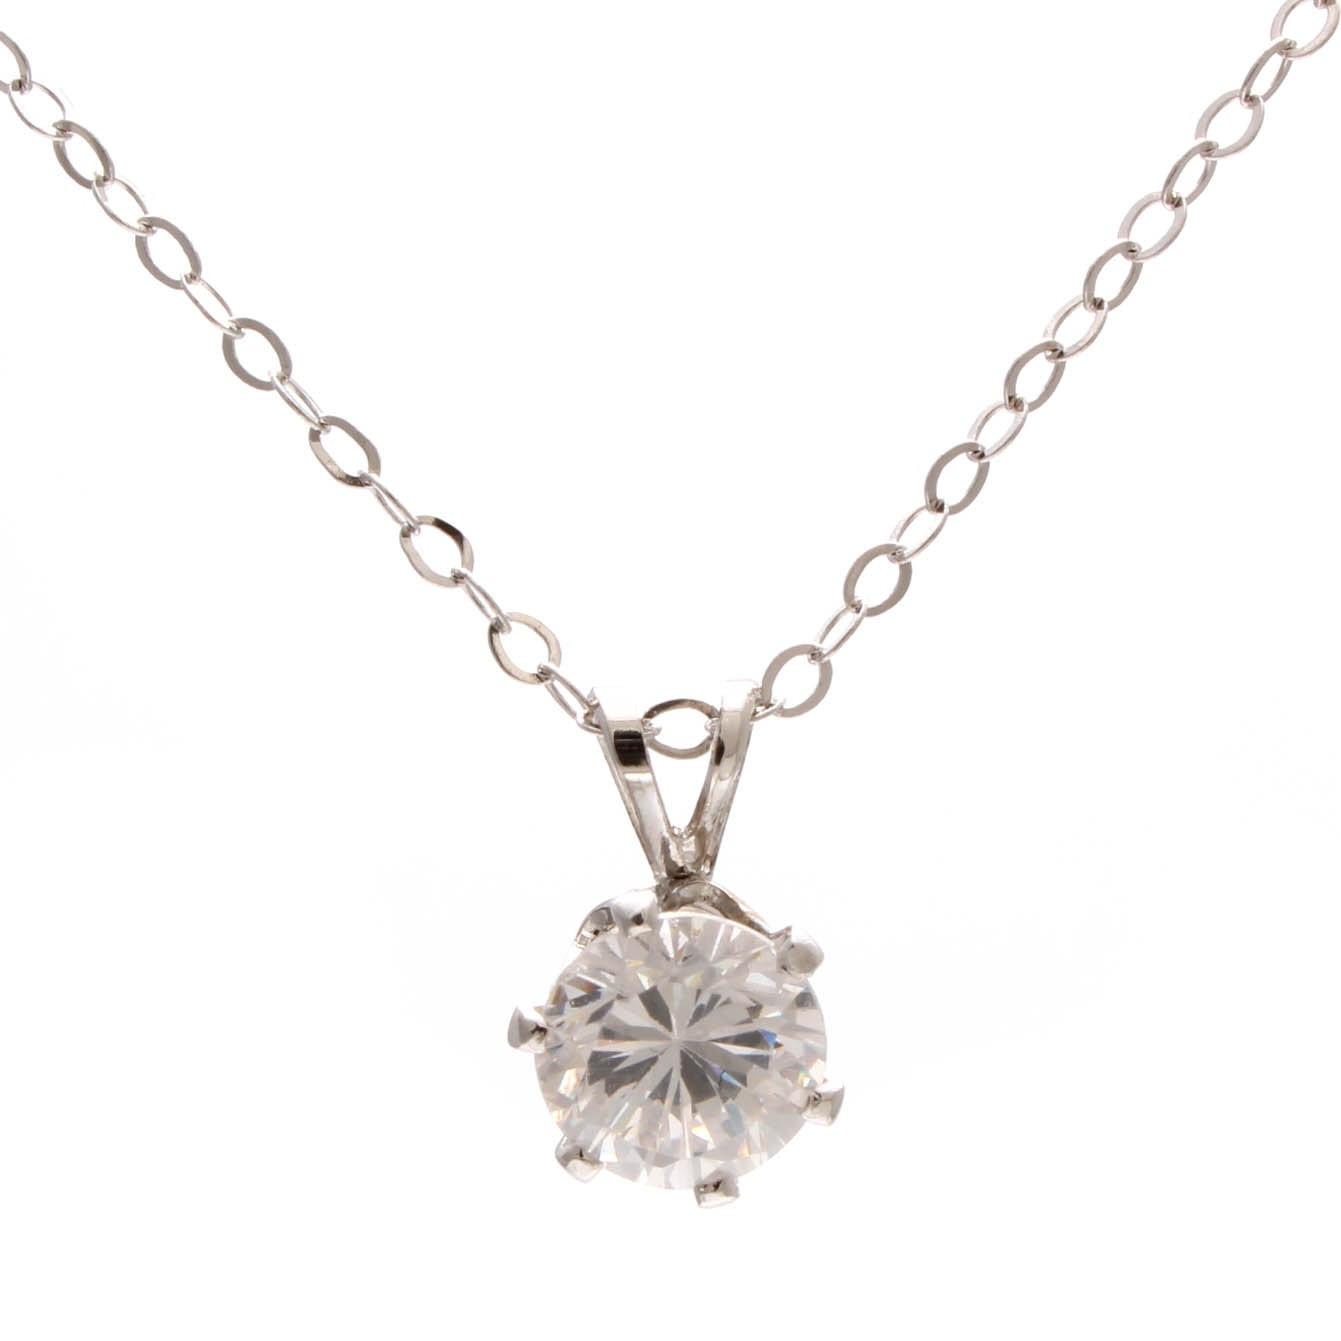 Sterling Silver Necklace with Glass Solitaire